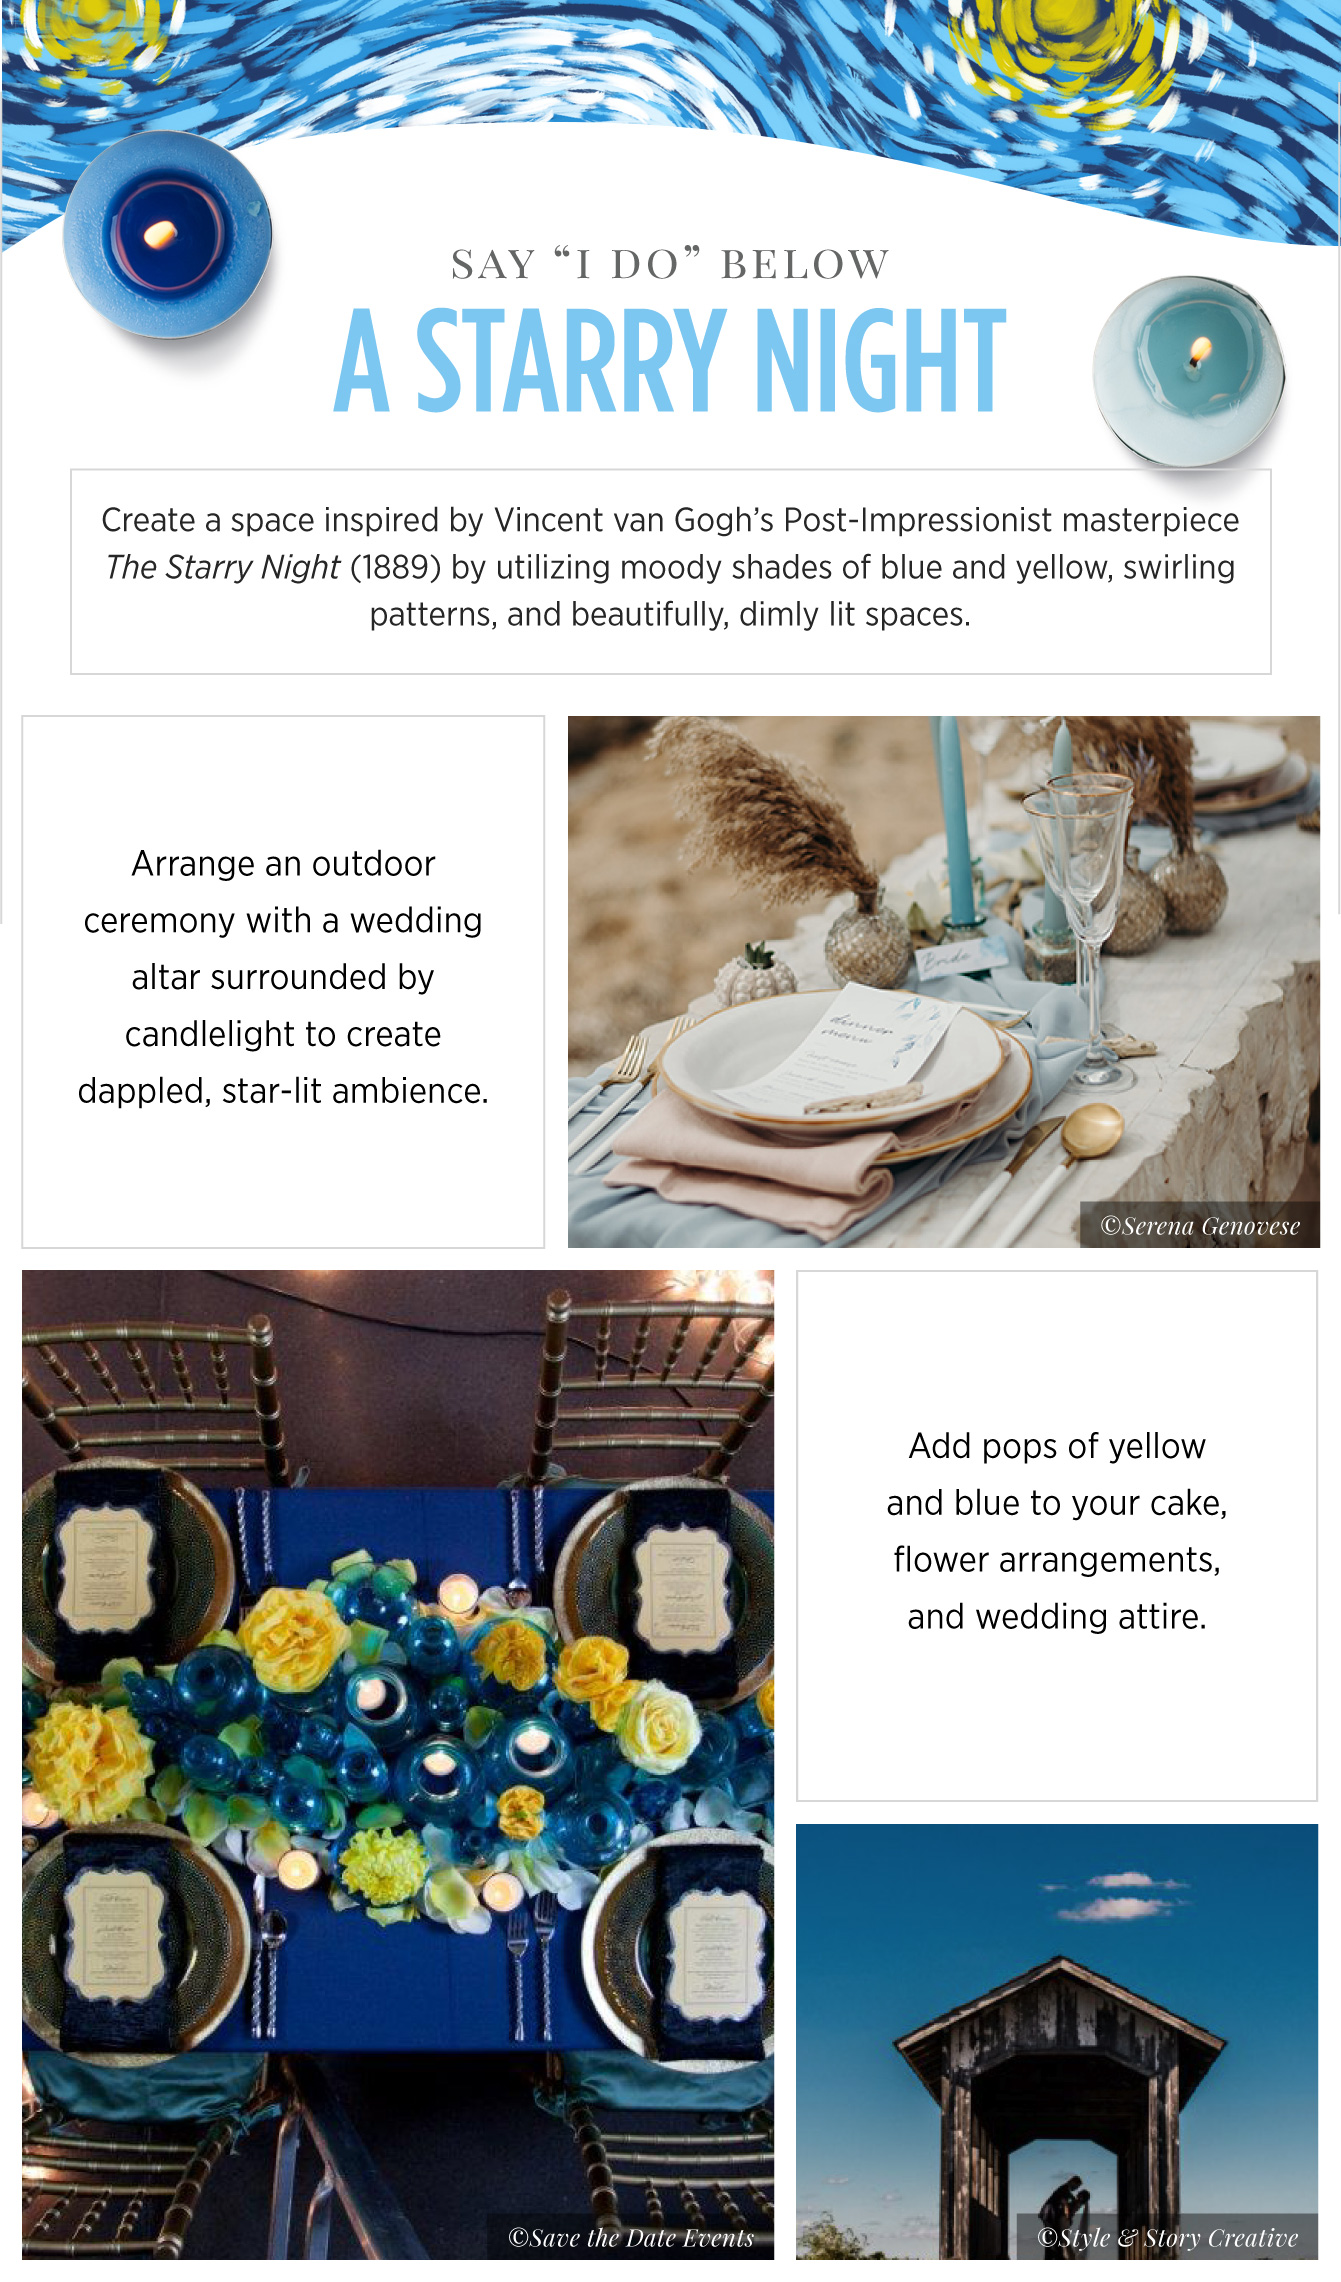 Wedding inspiration Van Gogh - See more inspirating wedding themes on B. Lovely Events